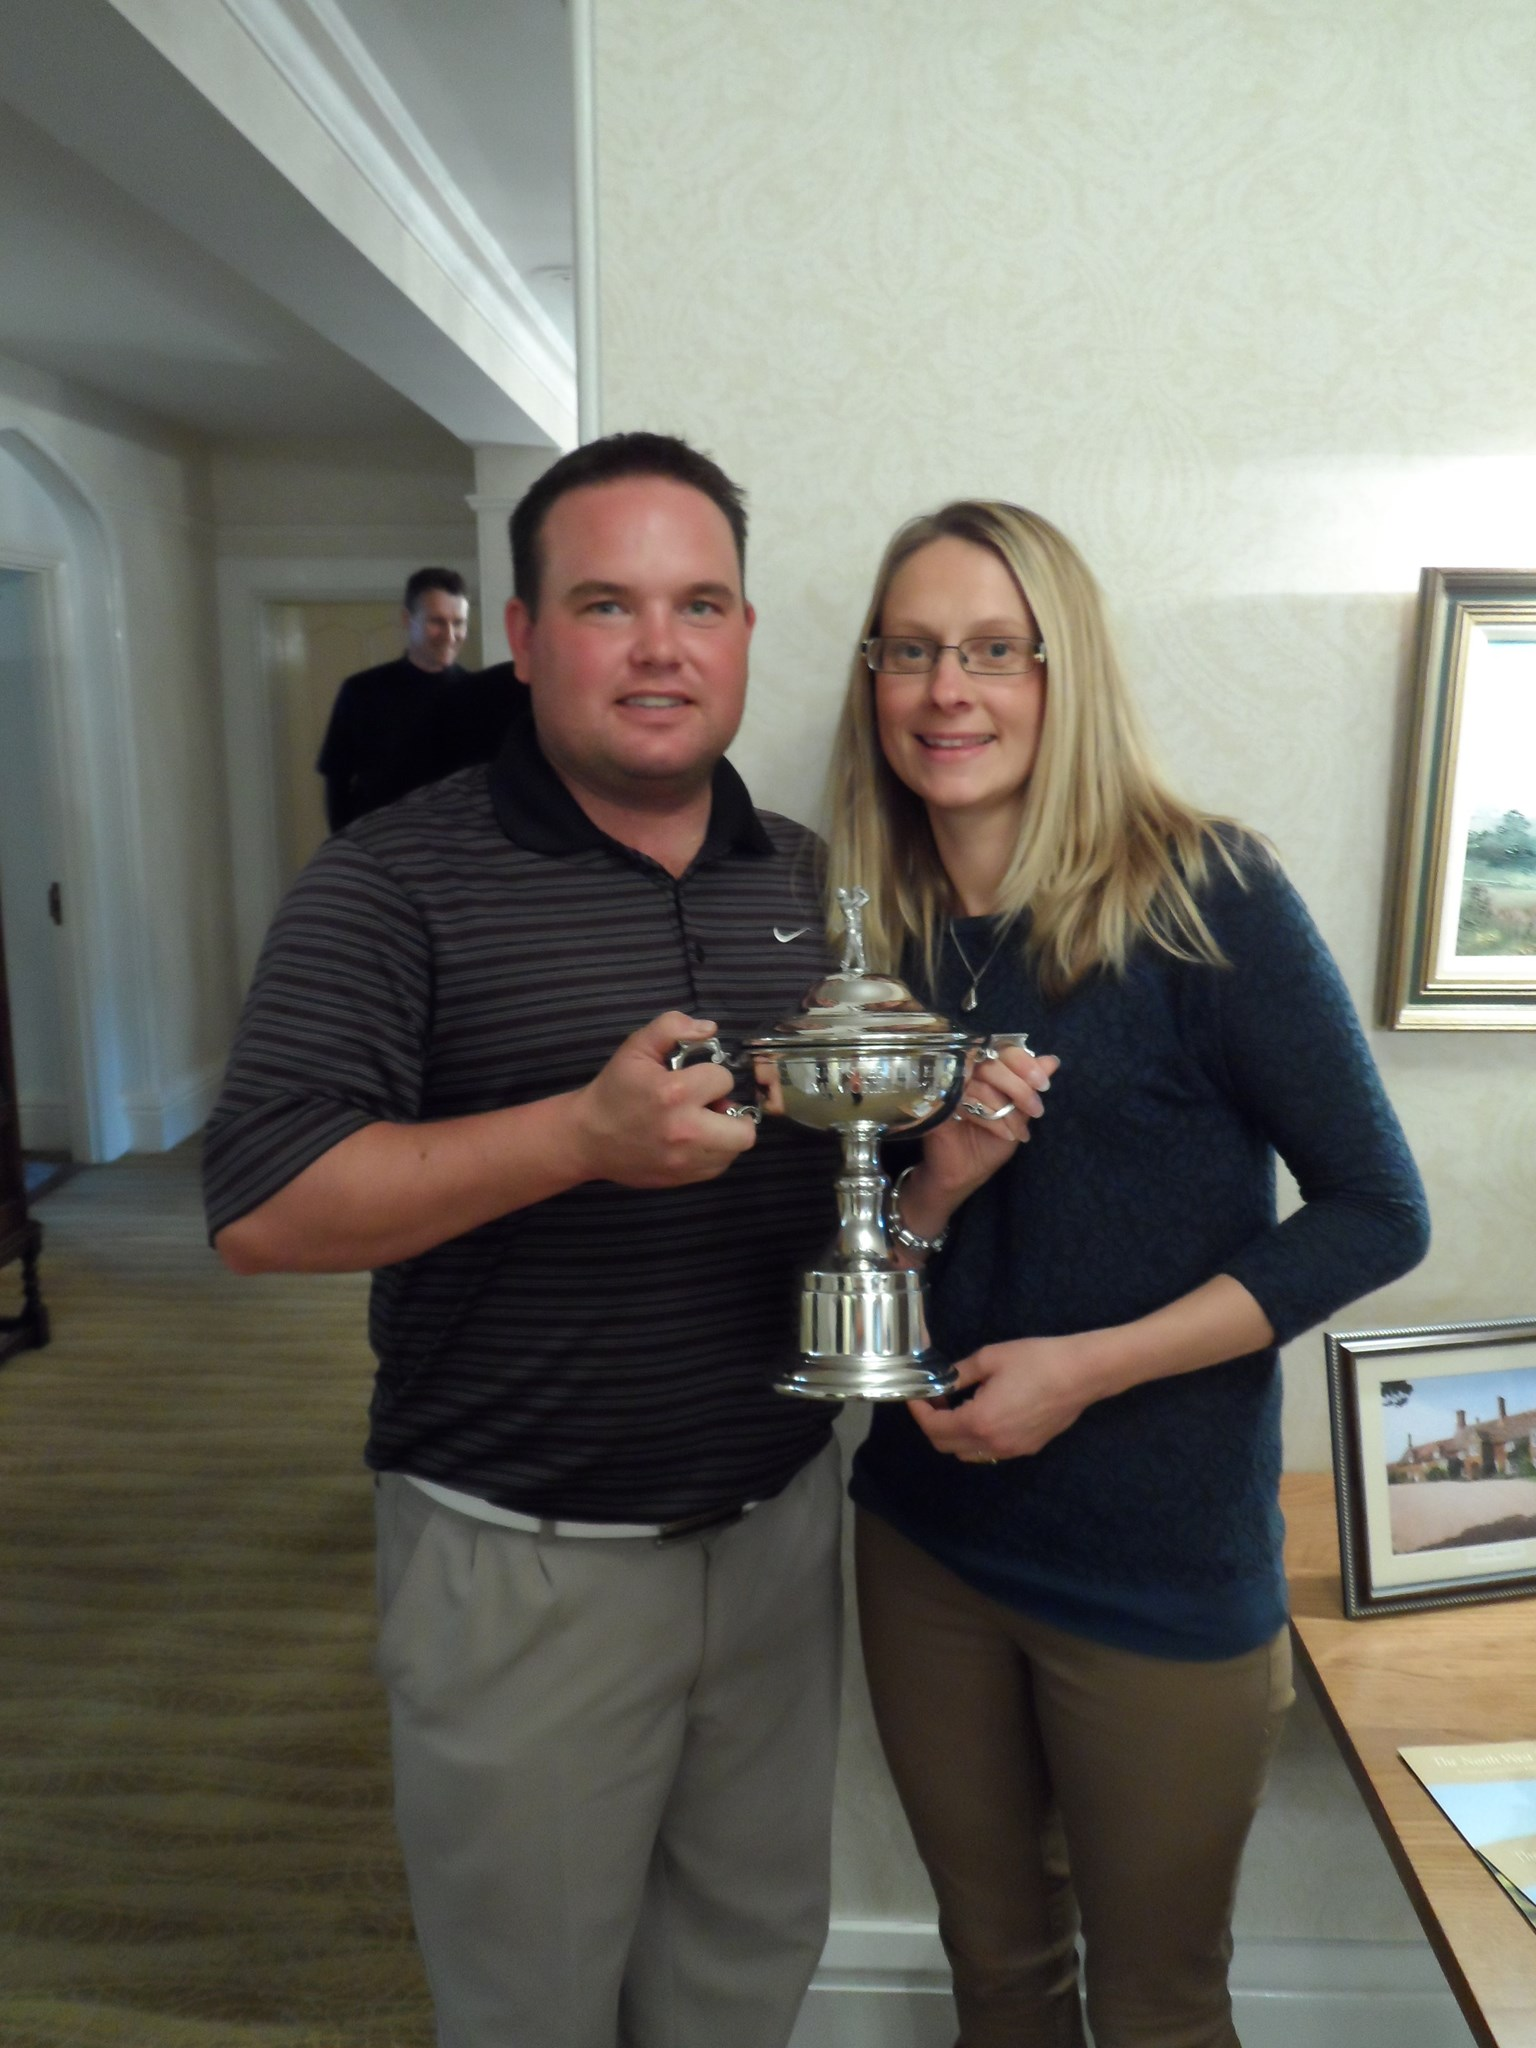 me & Odette with the trophy